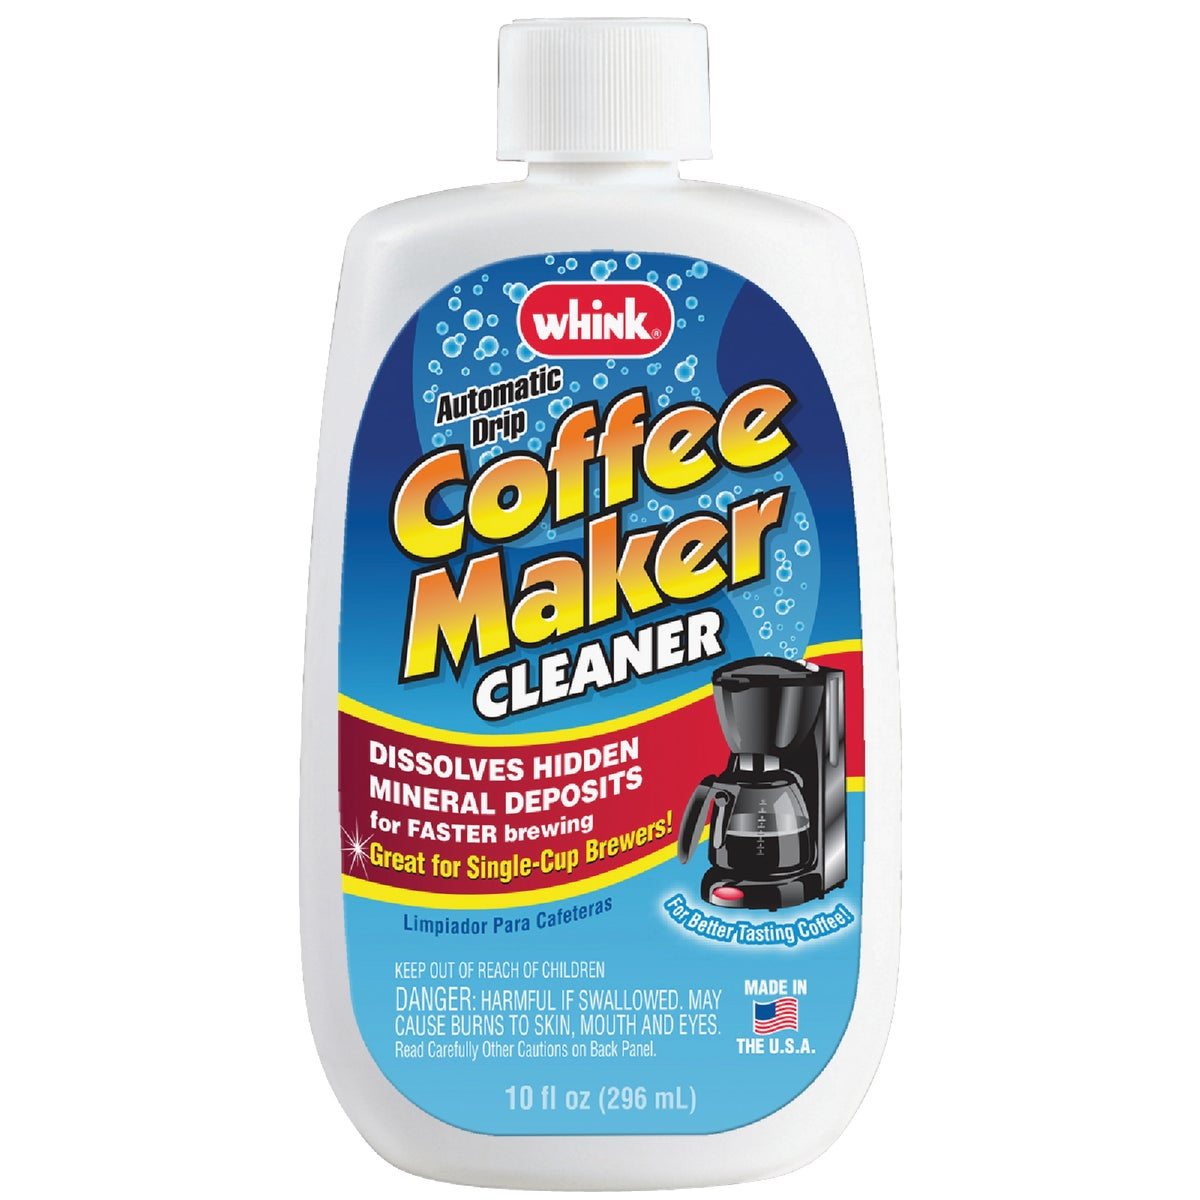 COFFEEMAKER CLEANER - 30081 by Whink Products Hotle